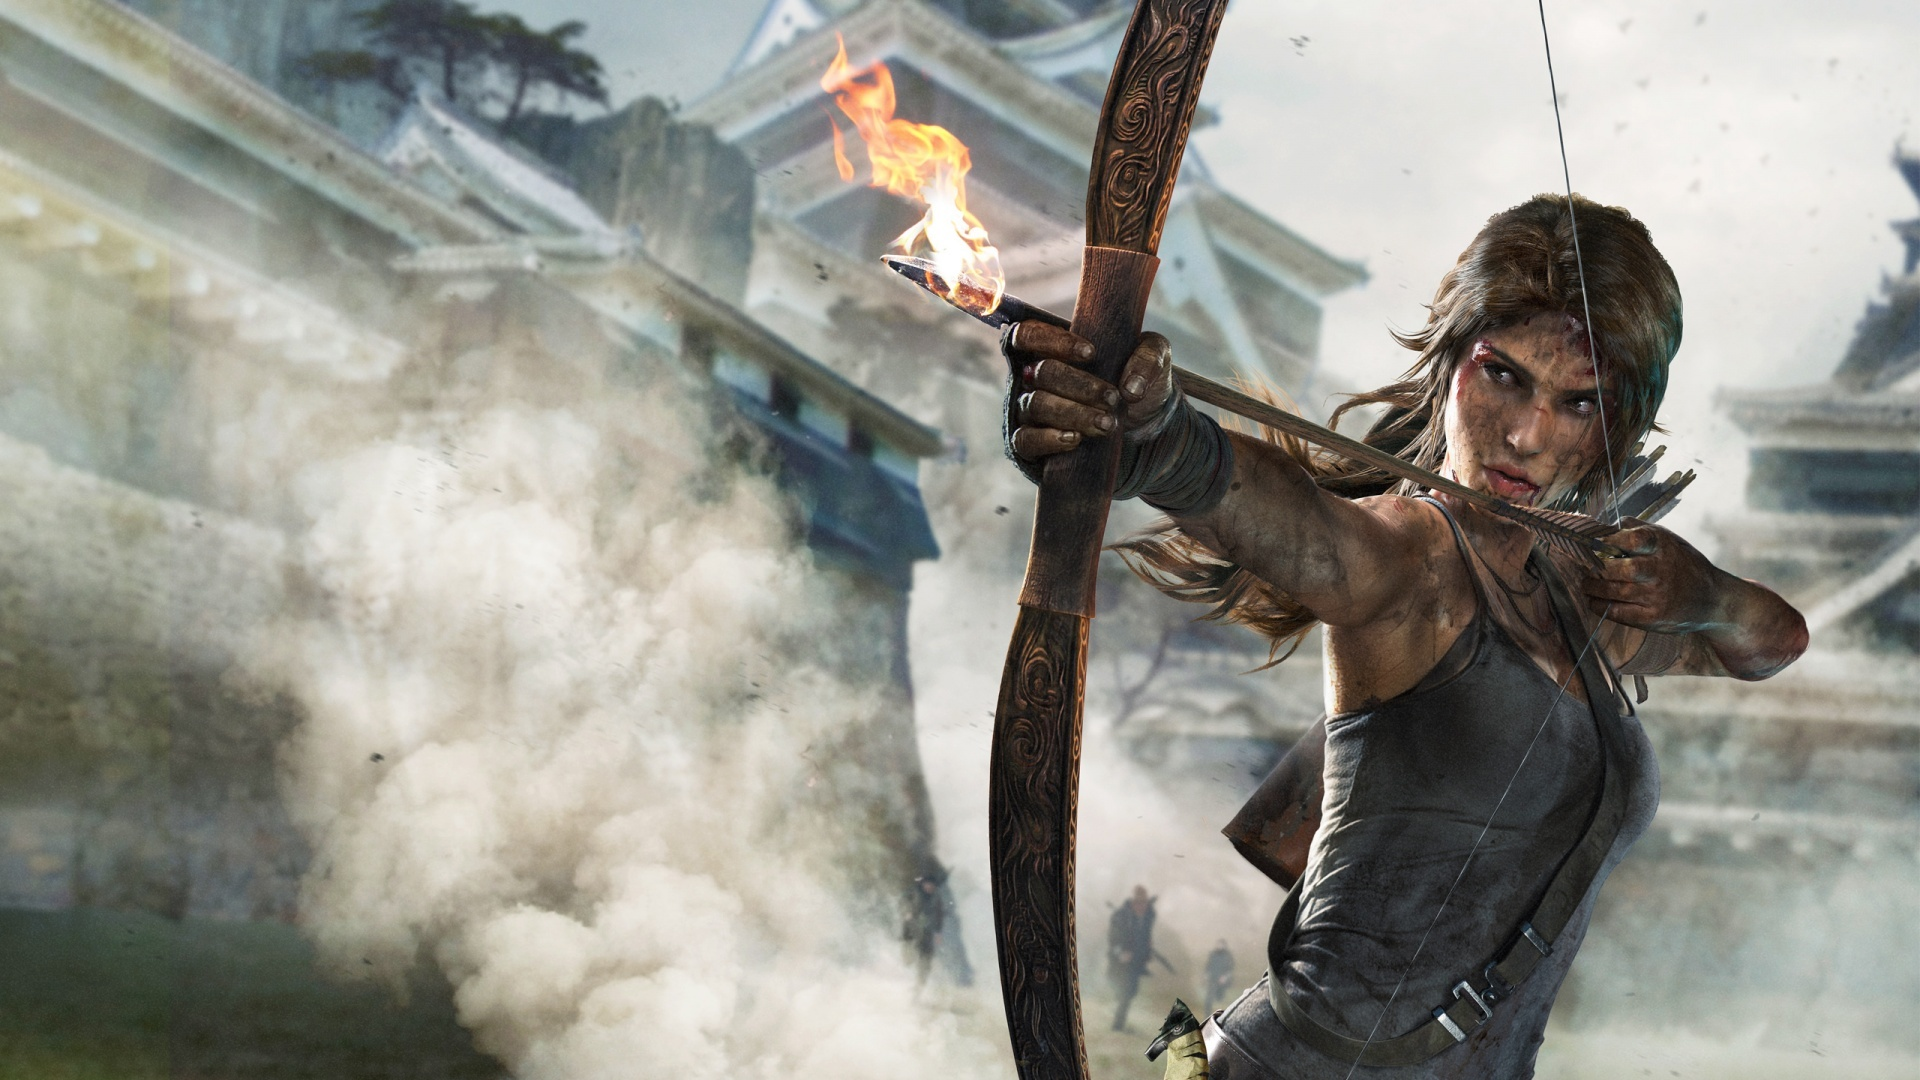 First Look at Alicia Vikander's Lara Croft in 'Tomb Raider' Set Photos